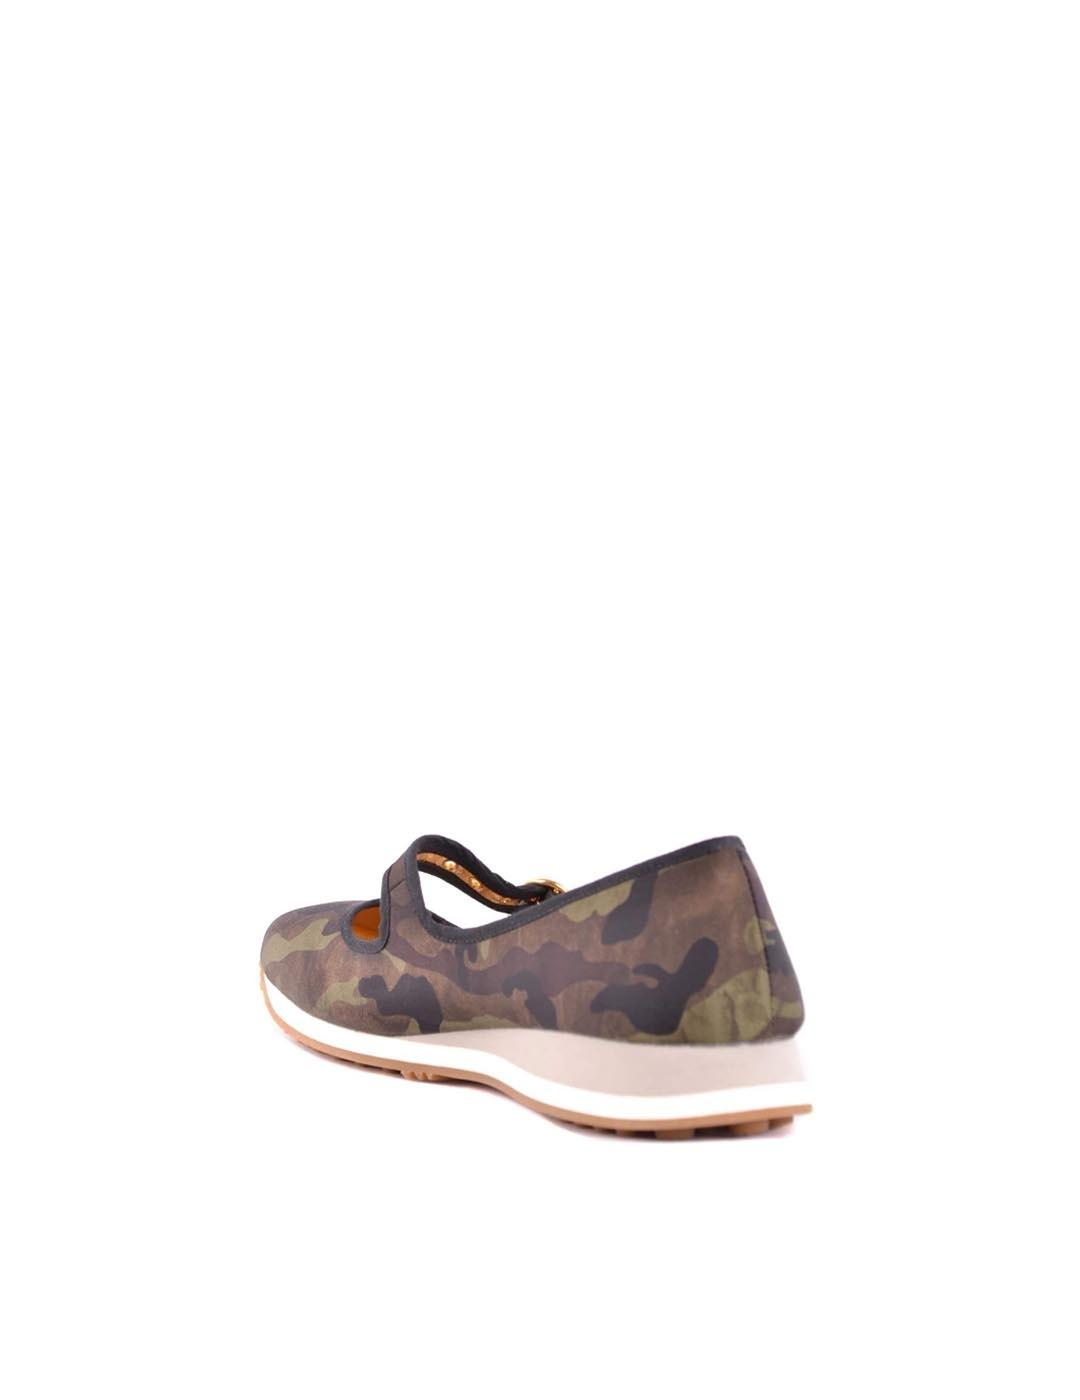 Zapatos Car Shoe verde marrón Camuflaje Mimético